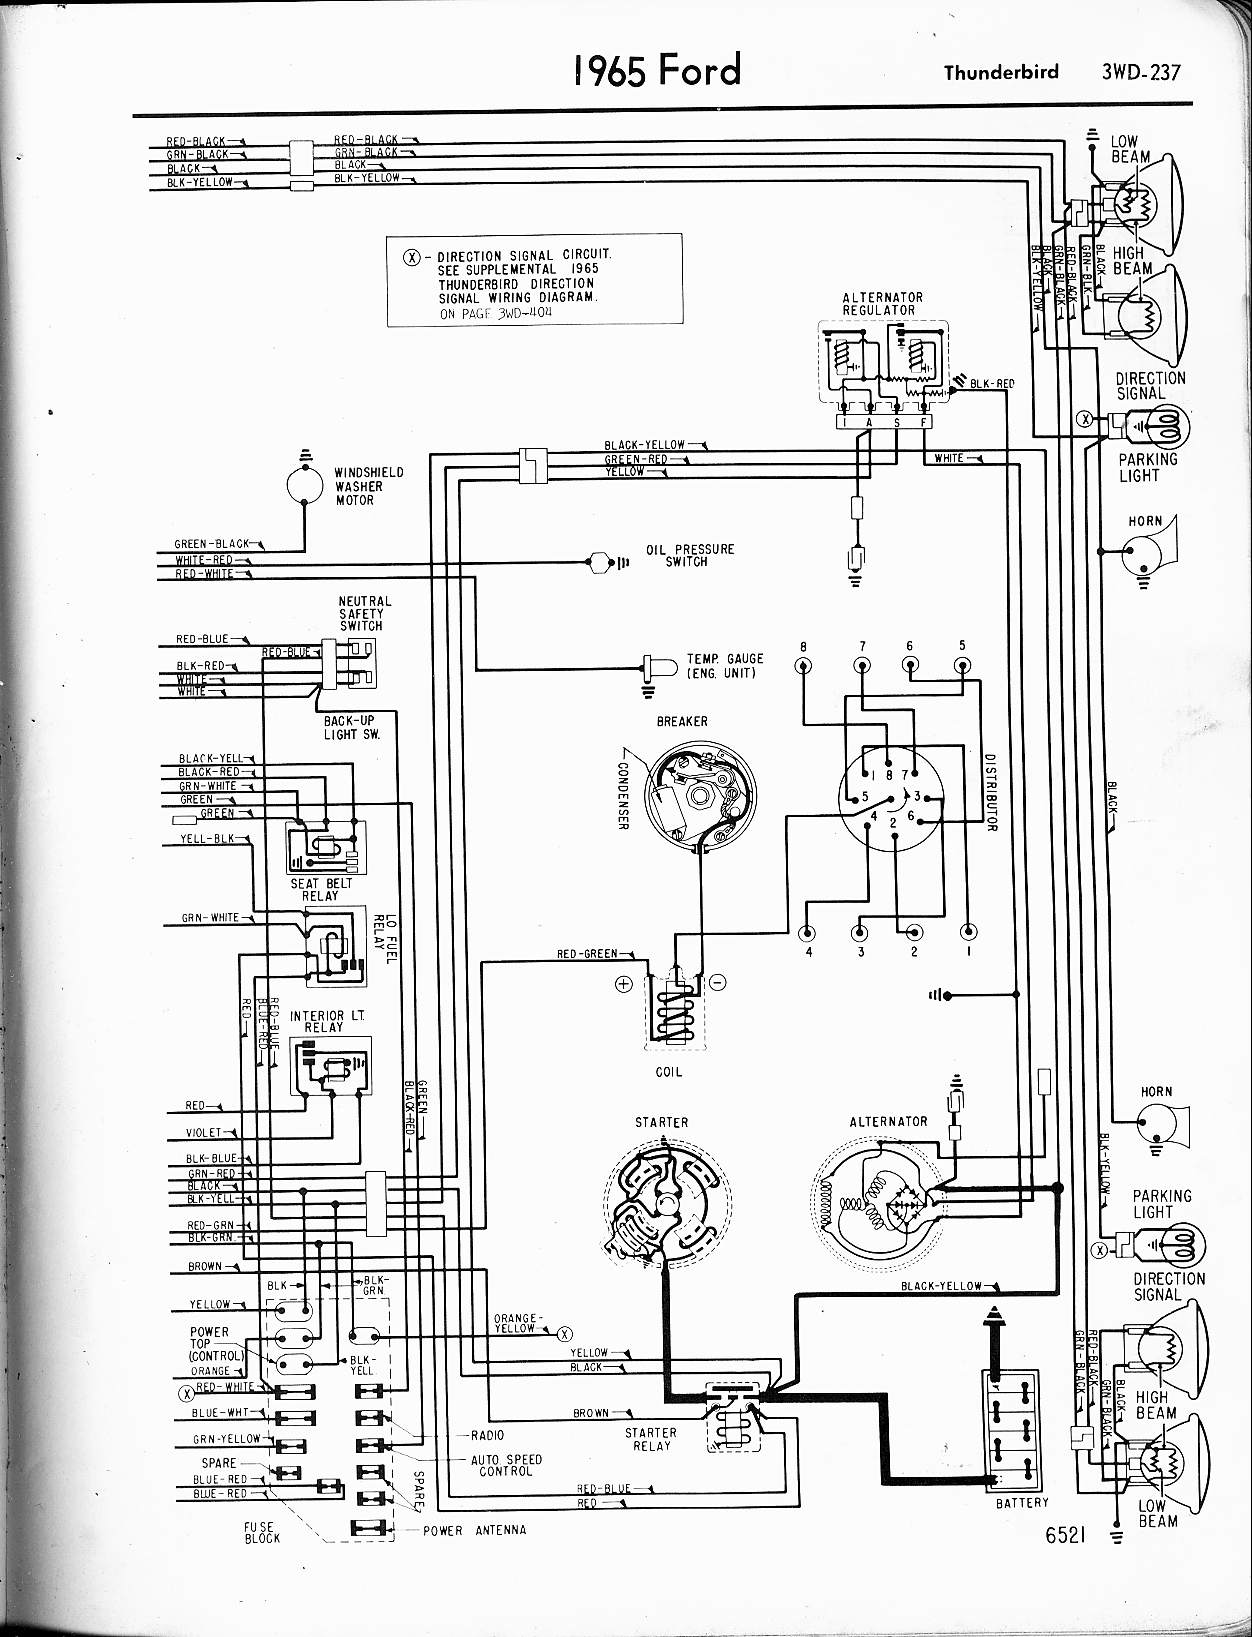 1956 ford wiring diagram simple wiring diagram voltage regulator circuit 57  65 ford wiring diagrams 1960